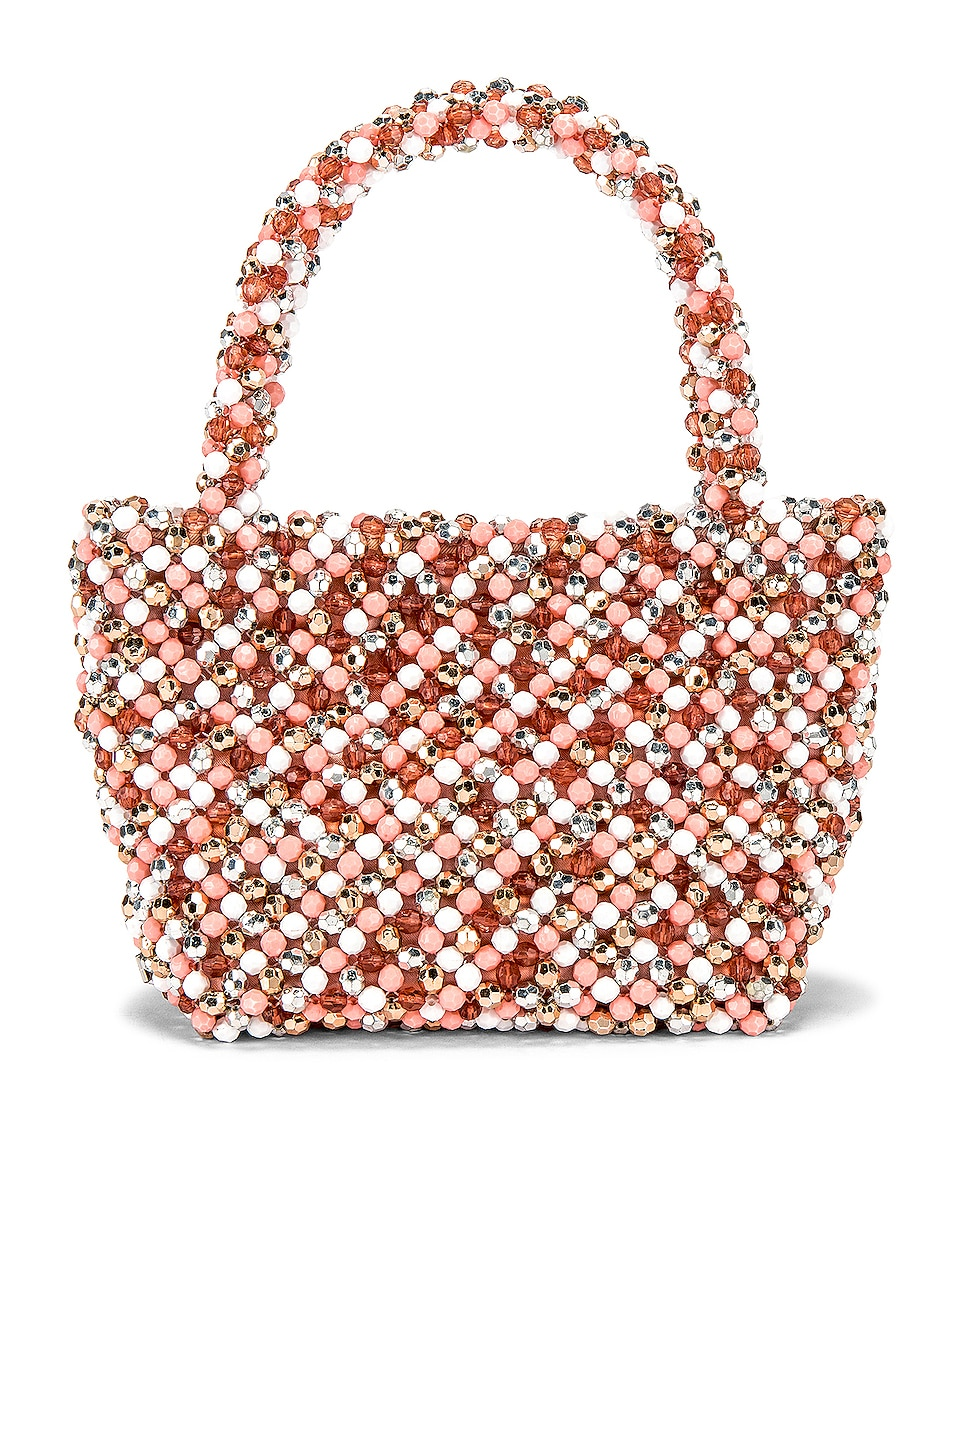 Loeffler Randall Mina Beaded Tote in Blush & Multi